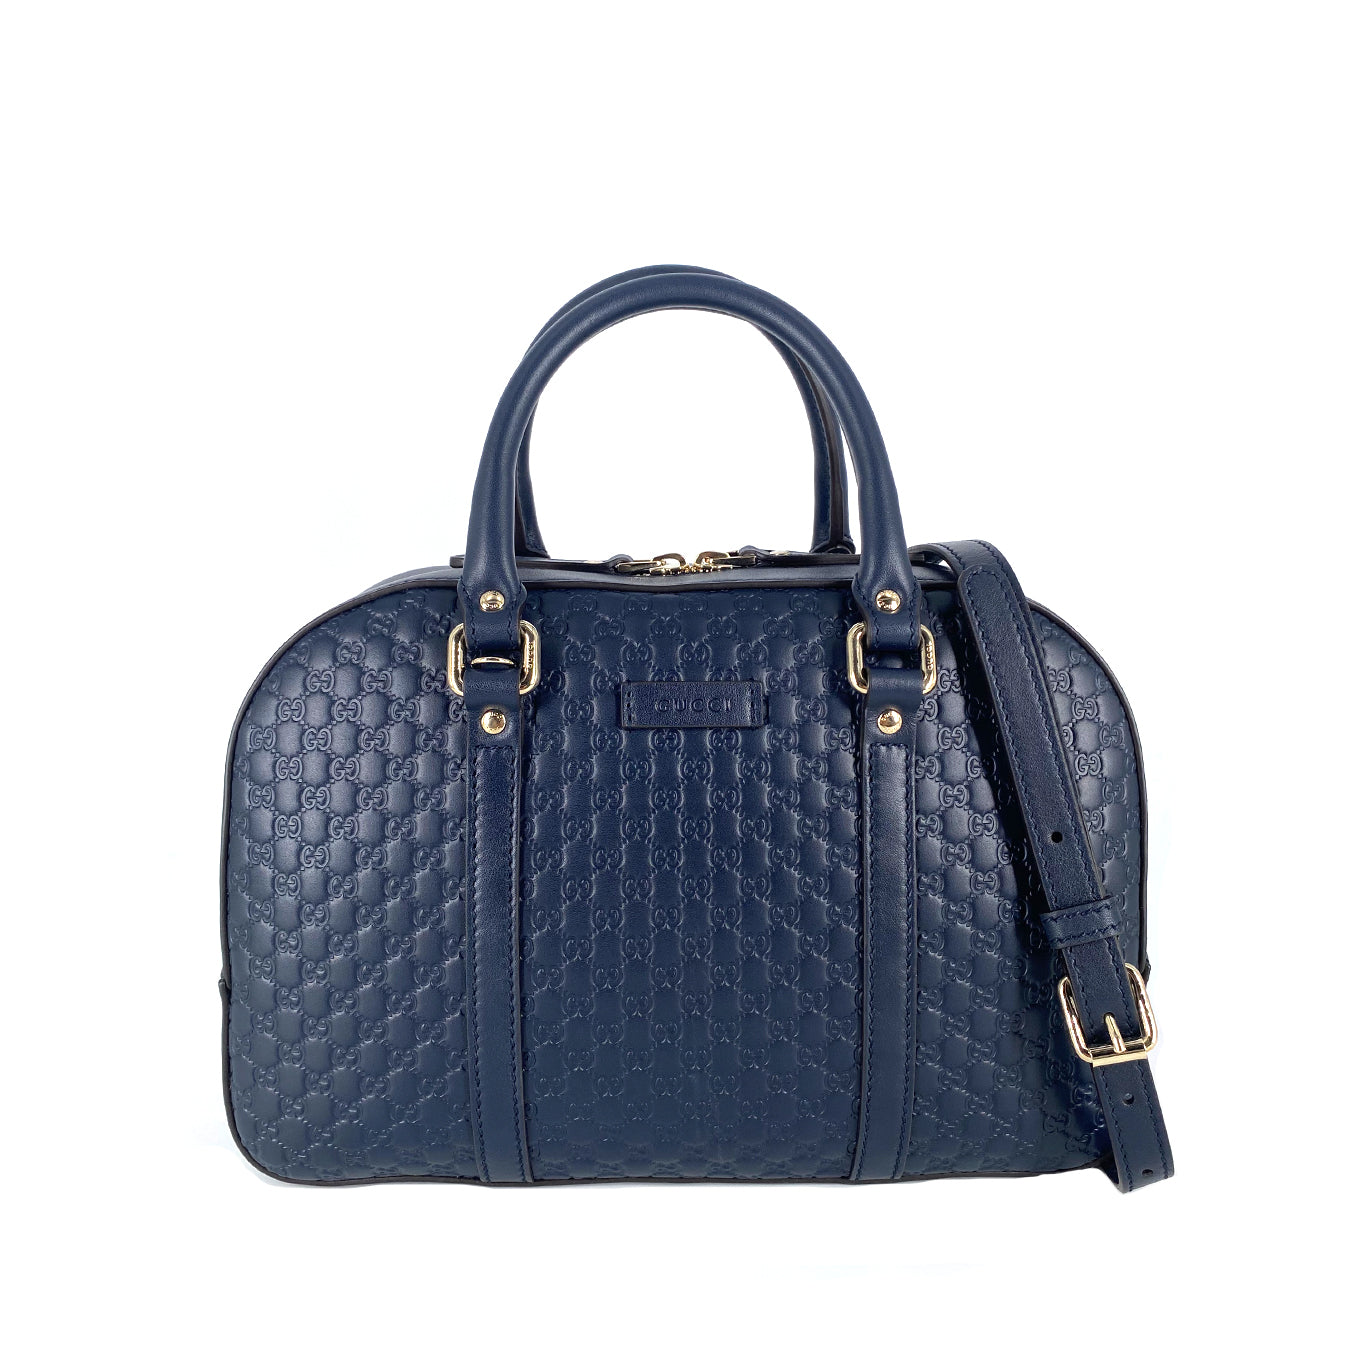 Gucci Microguccissima Speedy Satchel  Bag Medium in Navy